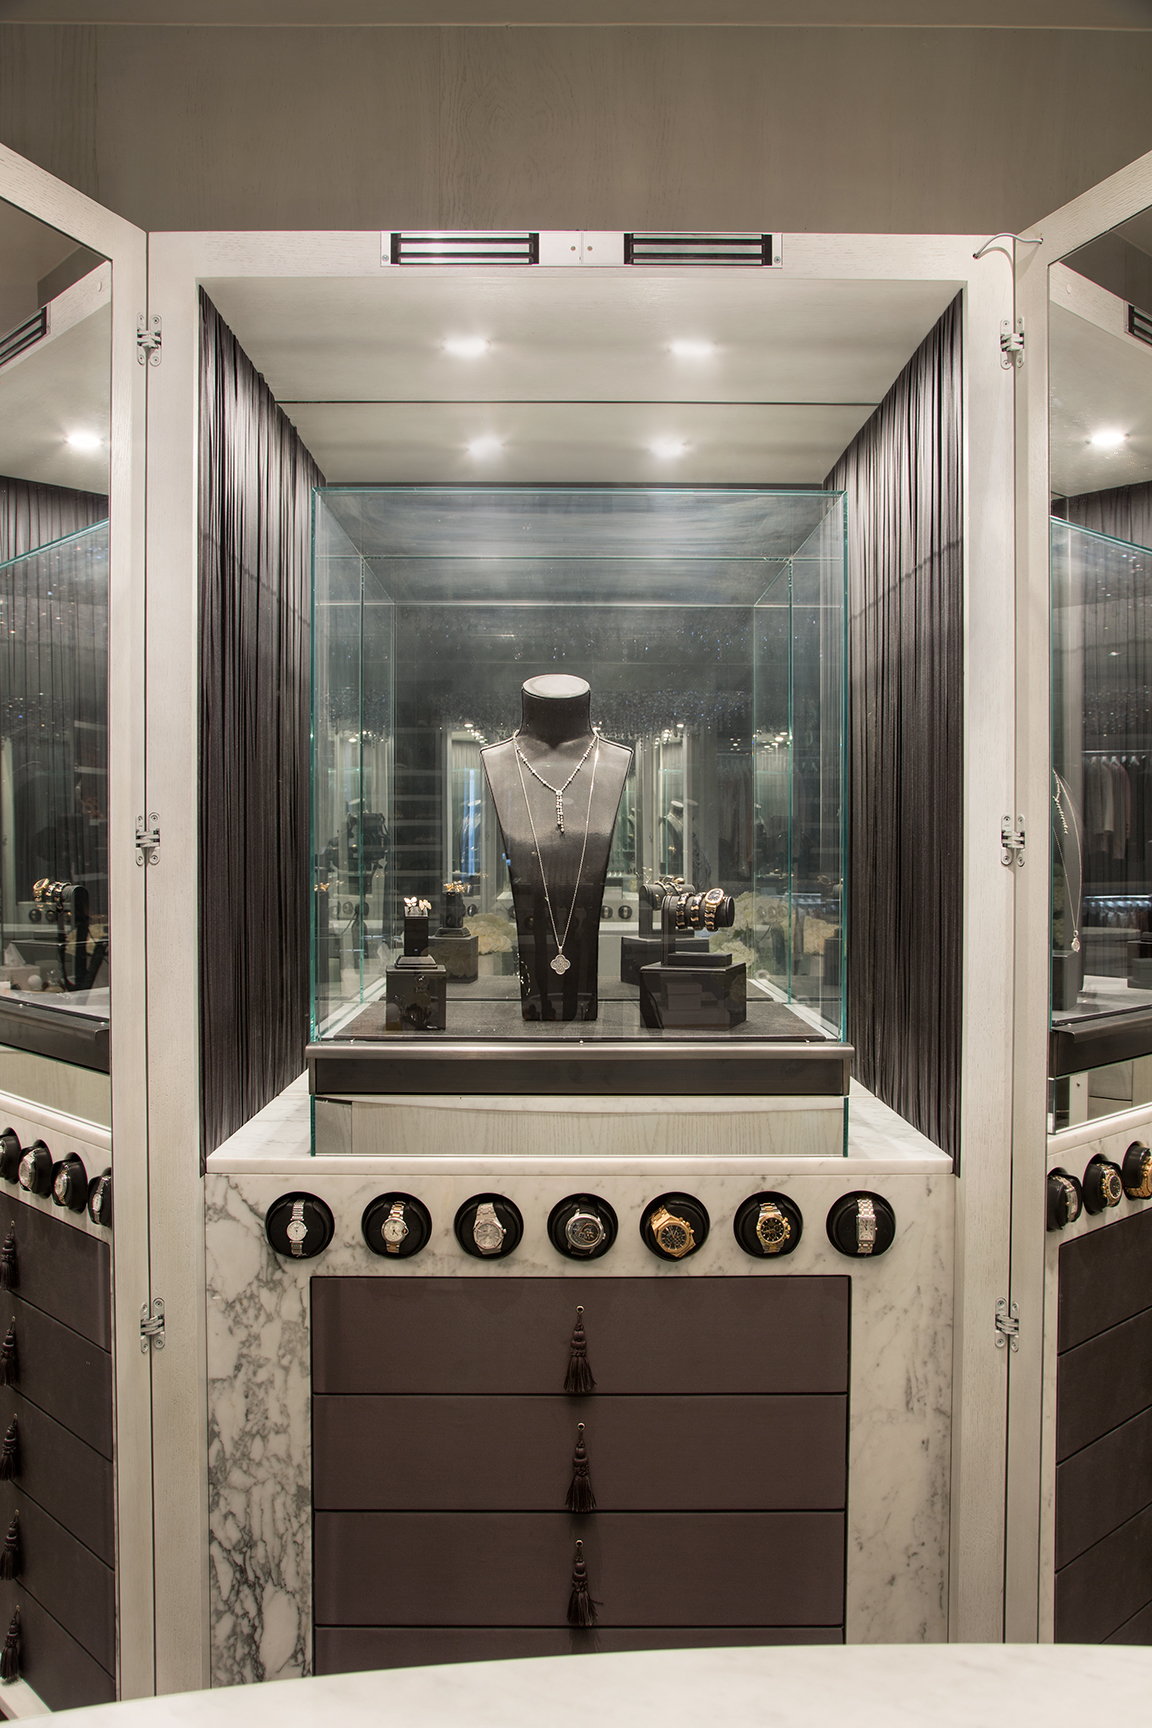 Jewelry cabinets  -- I love helping clients finds ways to store jewelry in their closet. Whether a pullout drawer with custom inserts or a standing cabinet with hooks, there are a multitude of creative ways to store and conceal bling beyond the typical box.